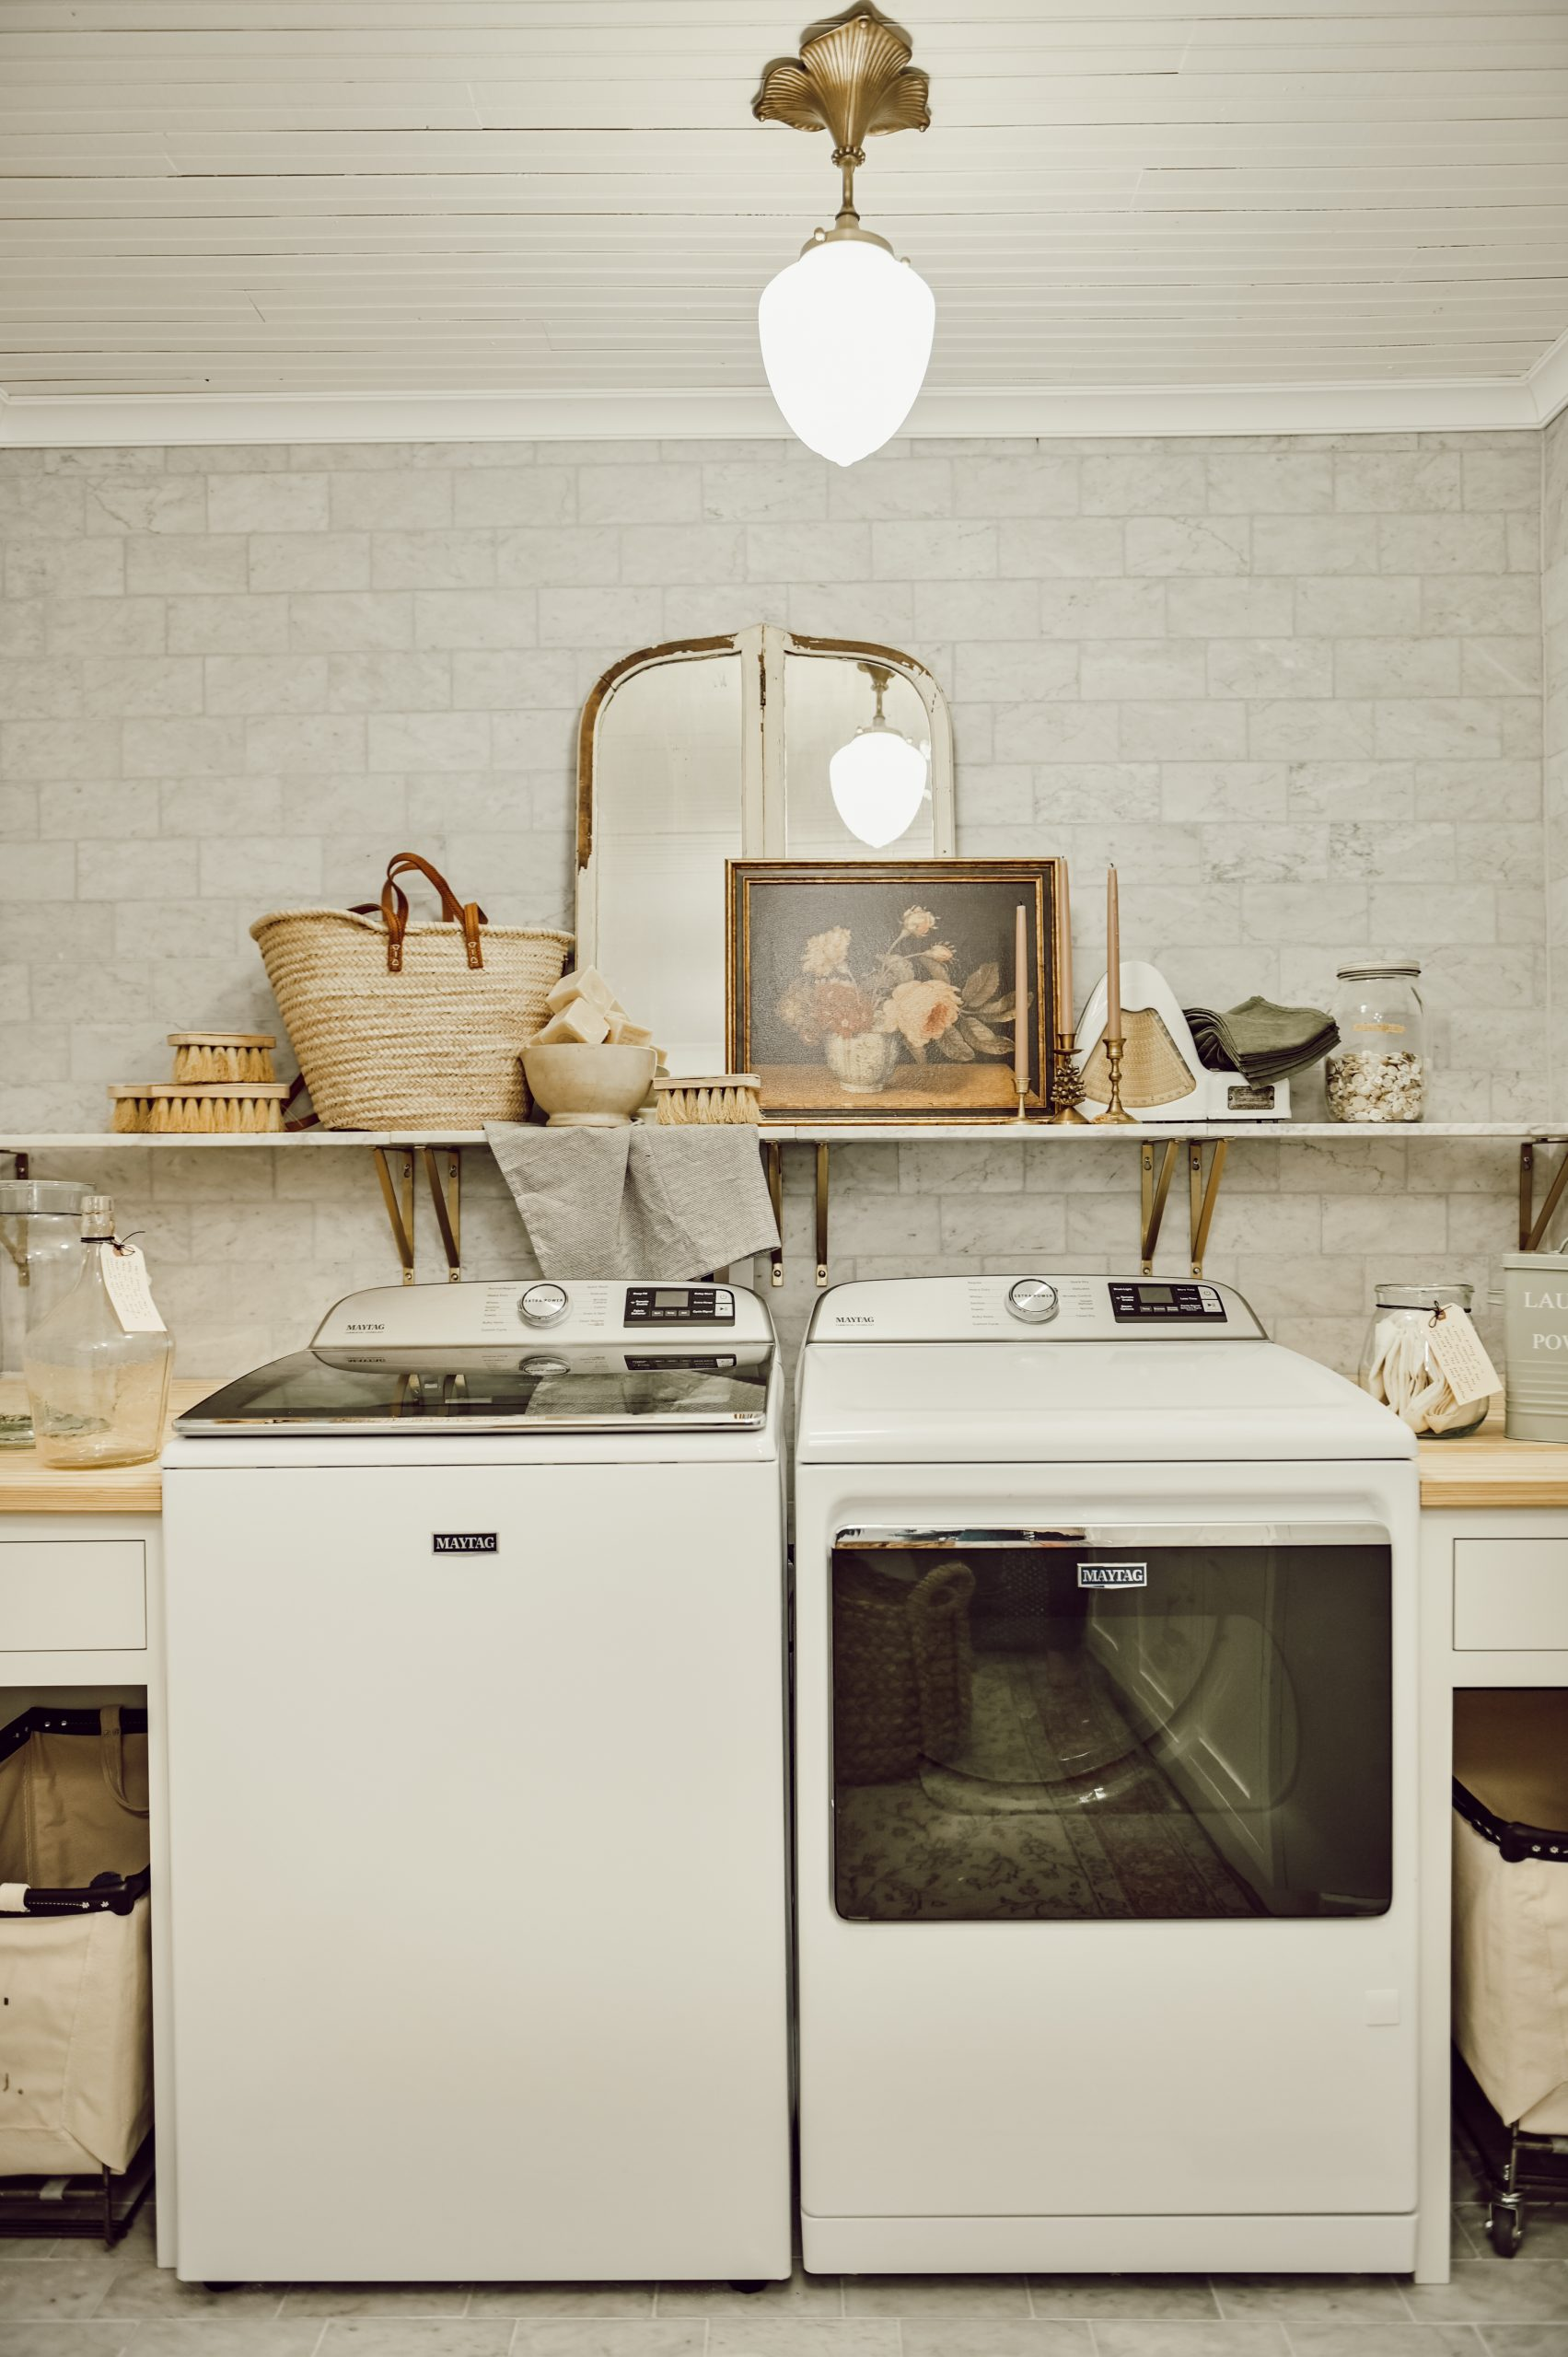 Laundry Room Reveal: Q&A